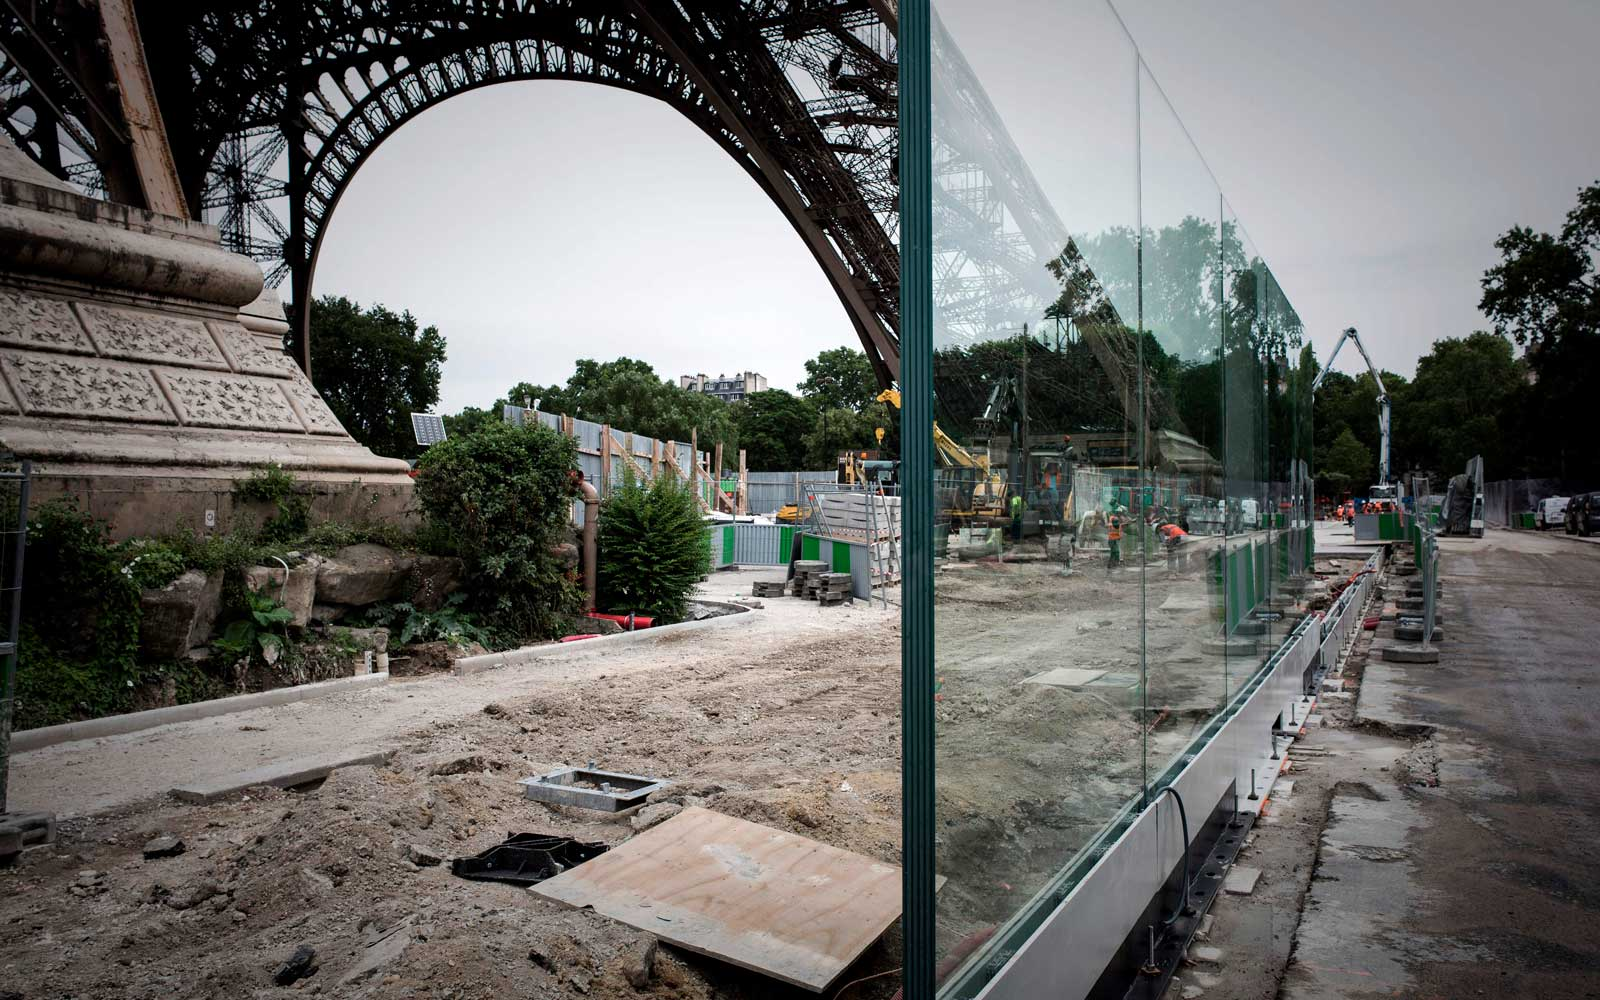 This picture taken on June 14, 2018 in Paris shows part of a bulletproof glass wall to be set around the Eiffel tower as an anti-terrorism measure.